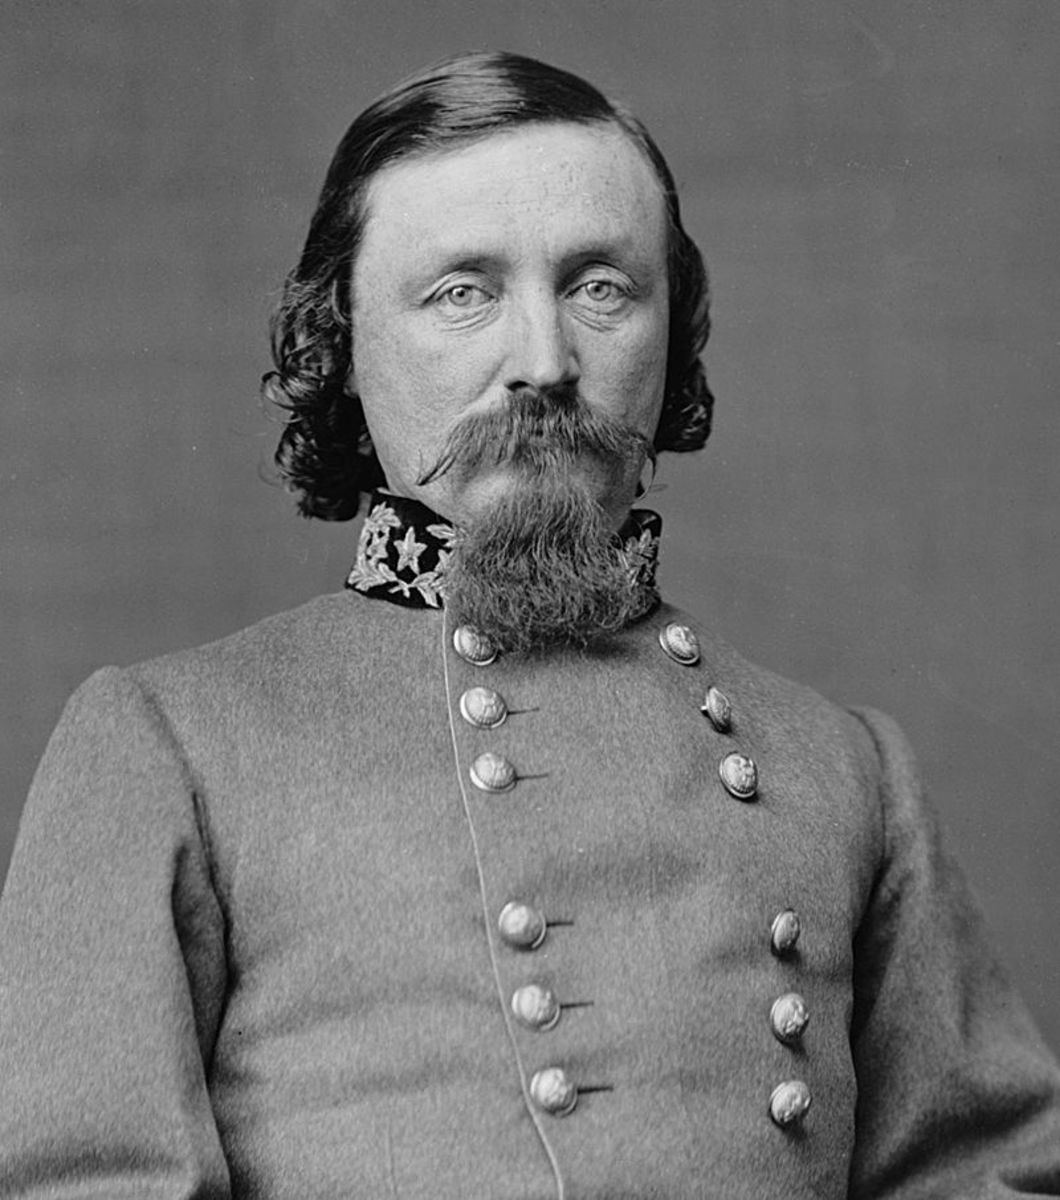 Confederate major general  George Pickett who's division was almost wiped out on the last day of battle at Gettysburg.  (January 16, 1825 – July 30, 1875) Abraham Lincoln's influence helped get him into West Point.